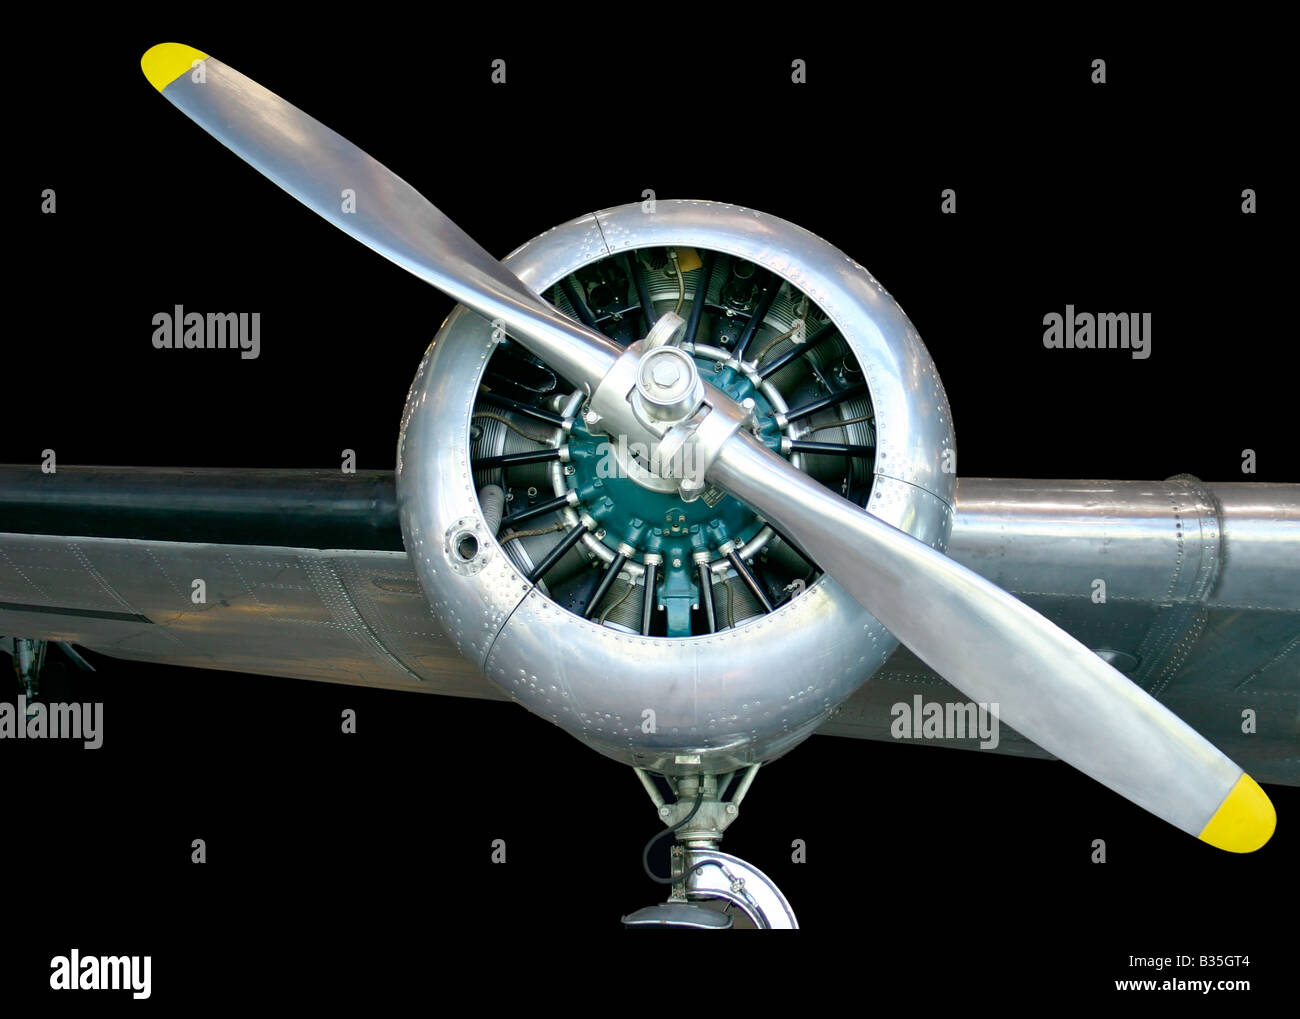 This is an old aircraft propeller - Stock Image